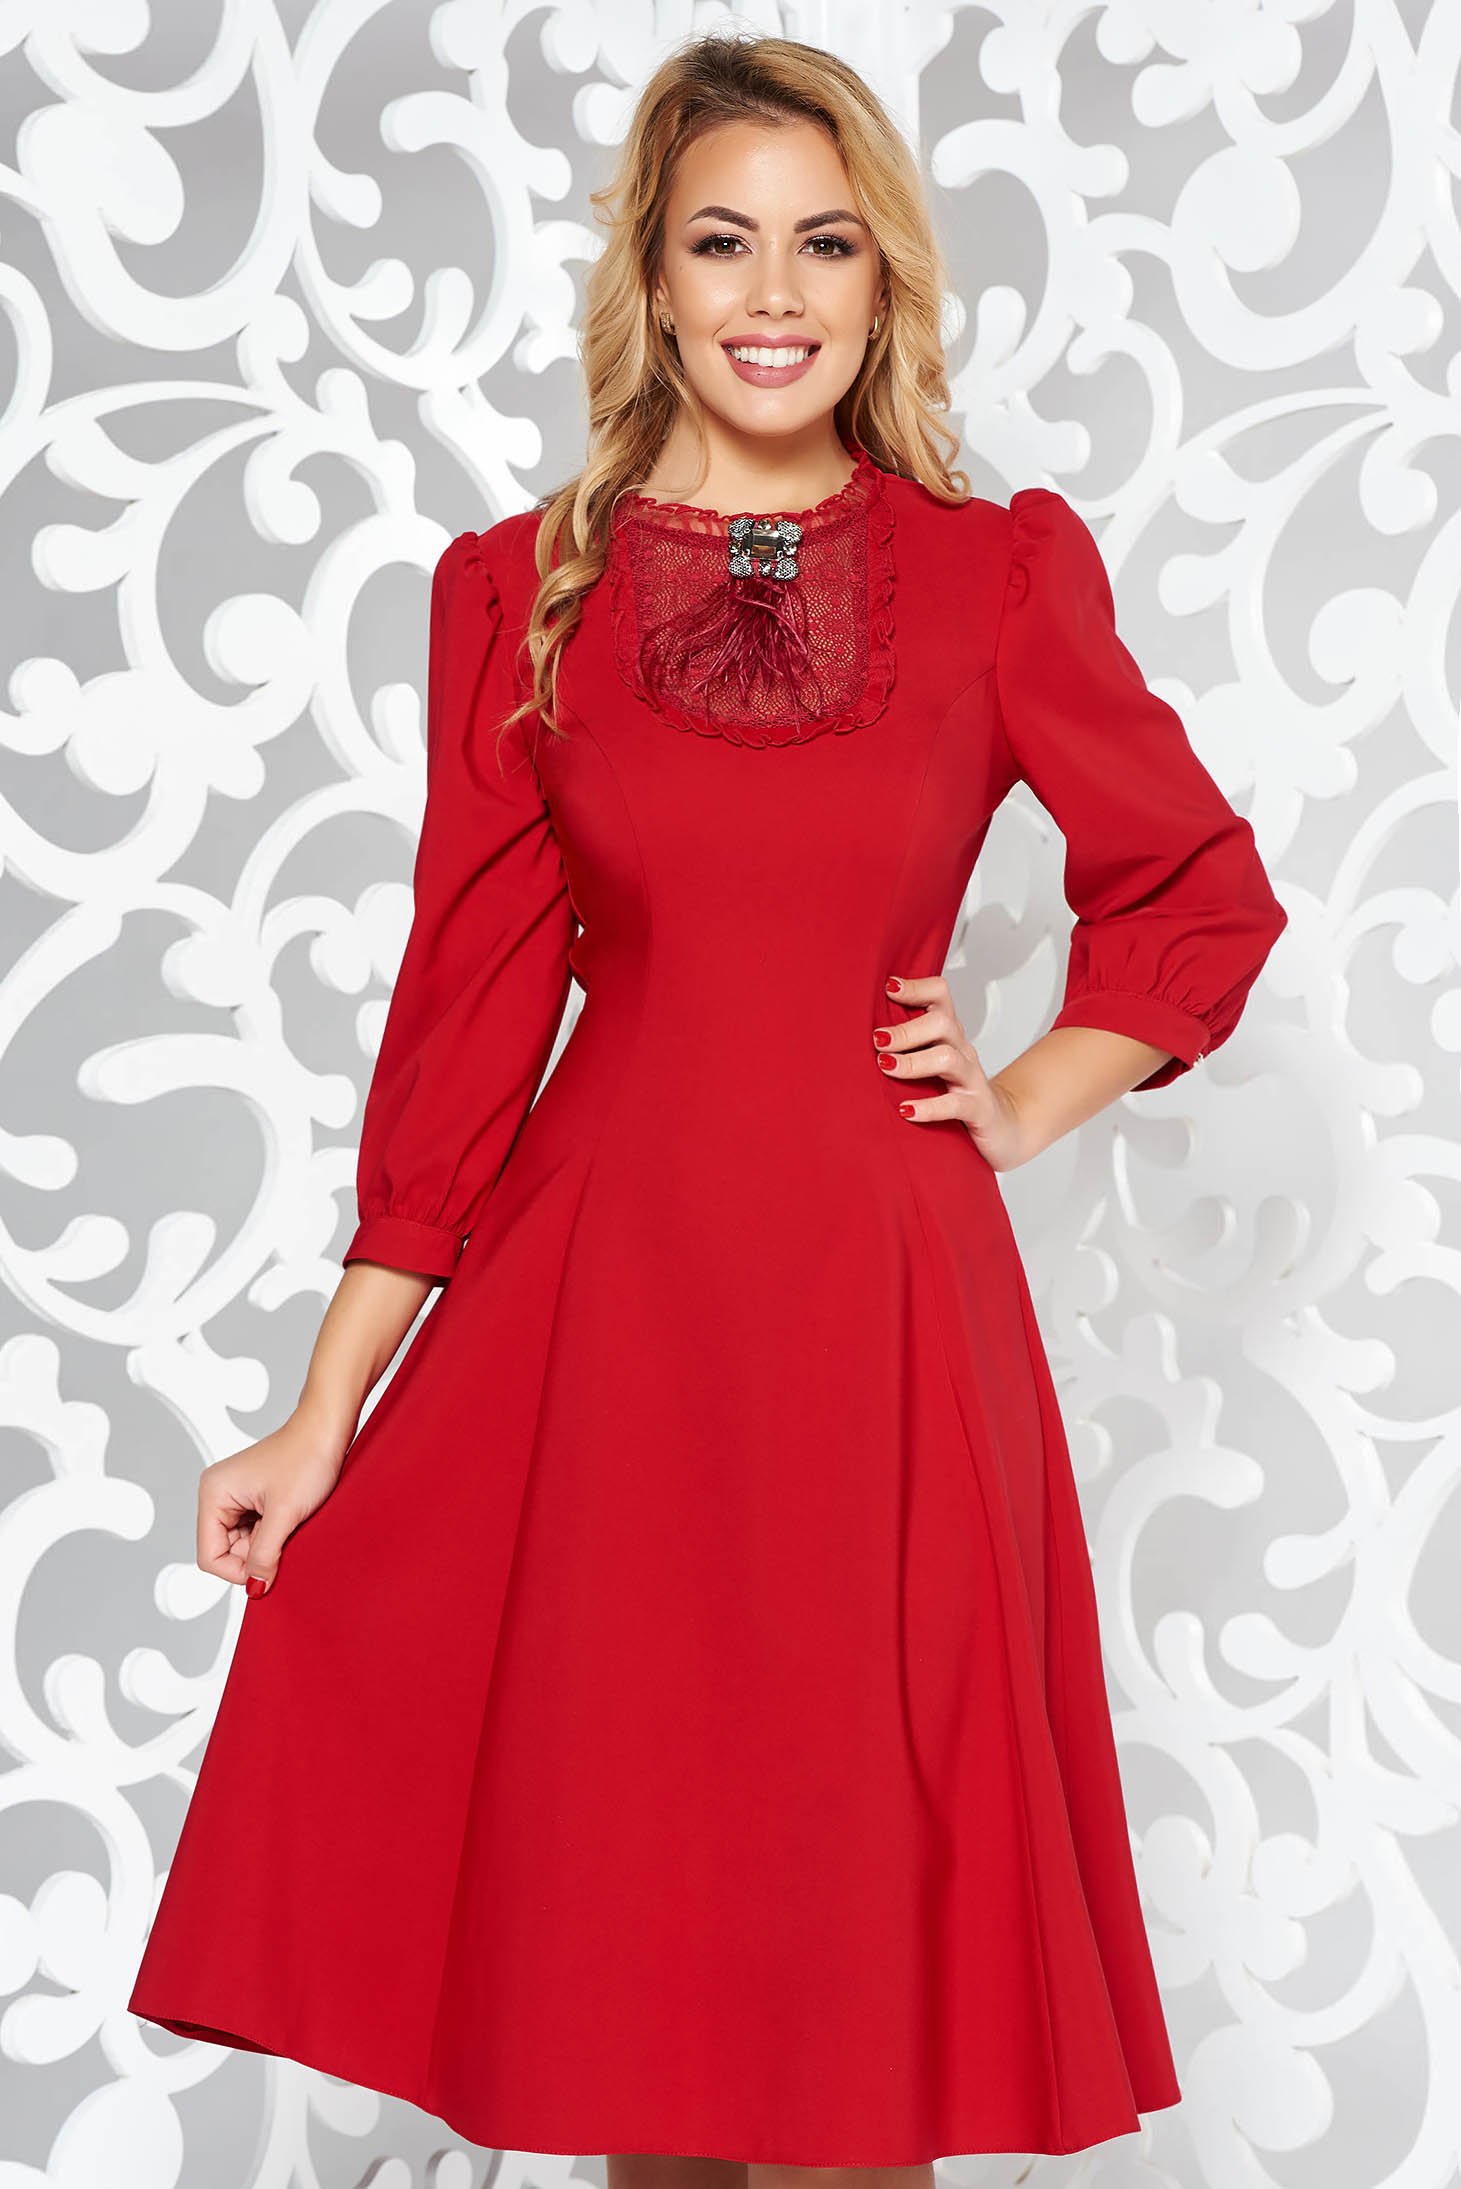 LaDonna red elegant cloche dress slightly elastic fabric with lace details accessorized with breastpin